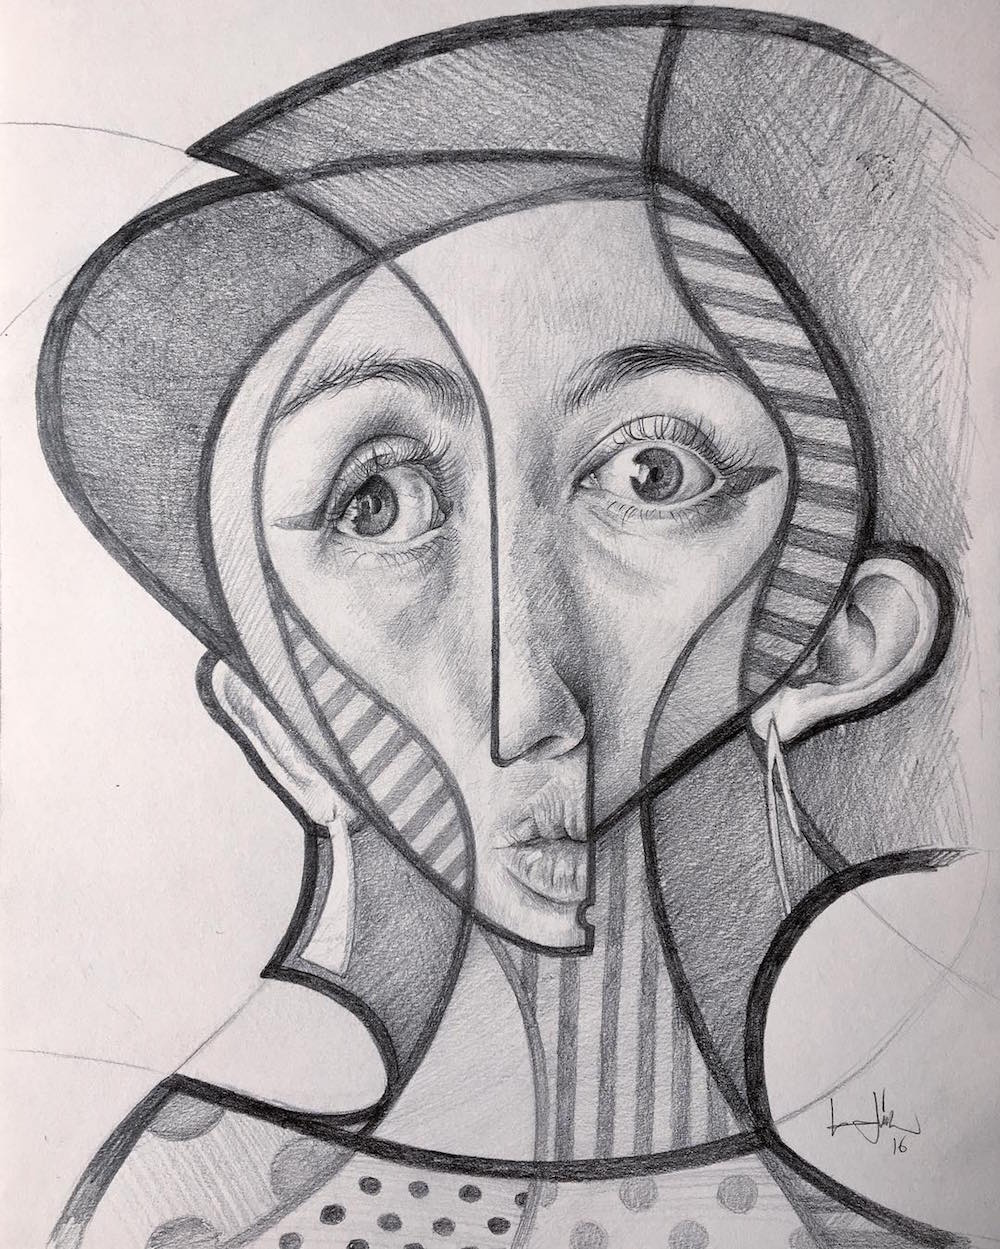 Cubism x realism in BELIN works of art